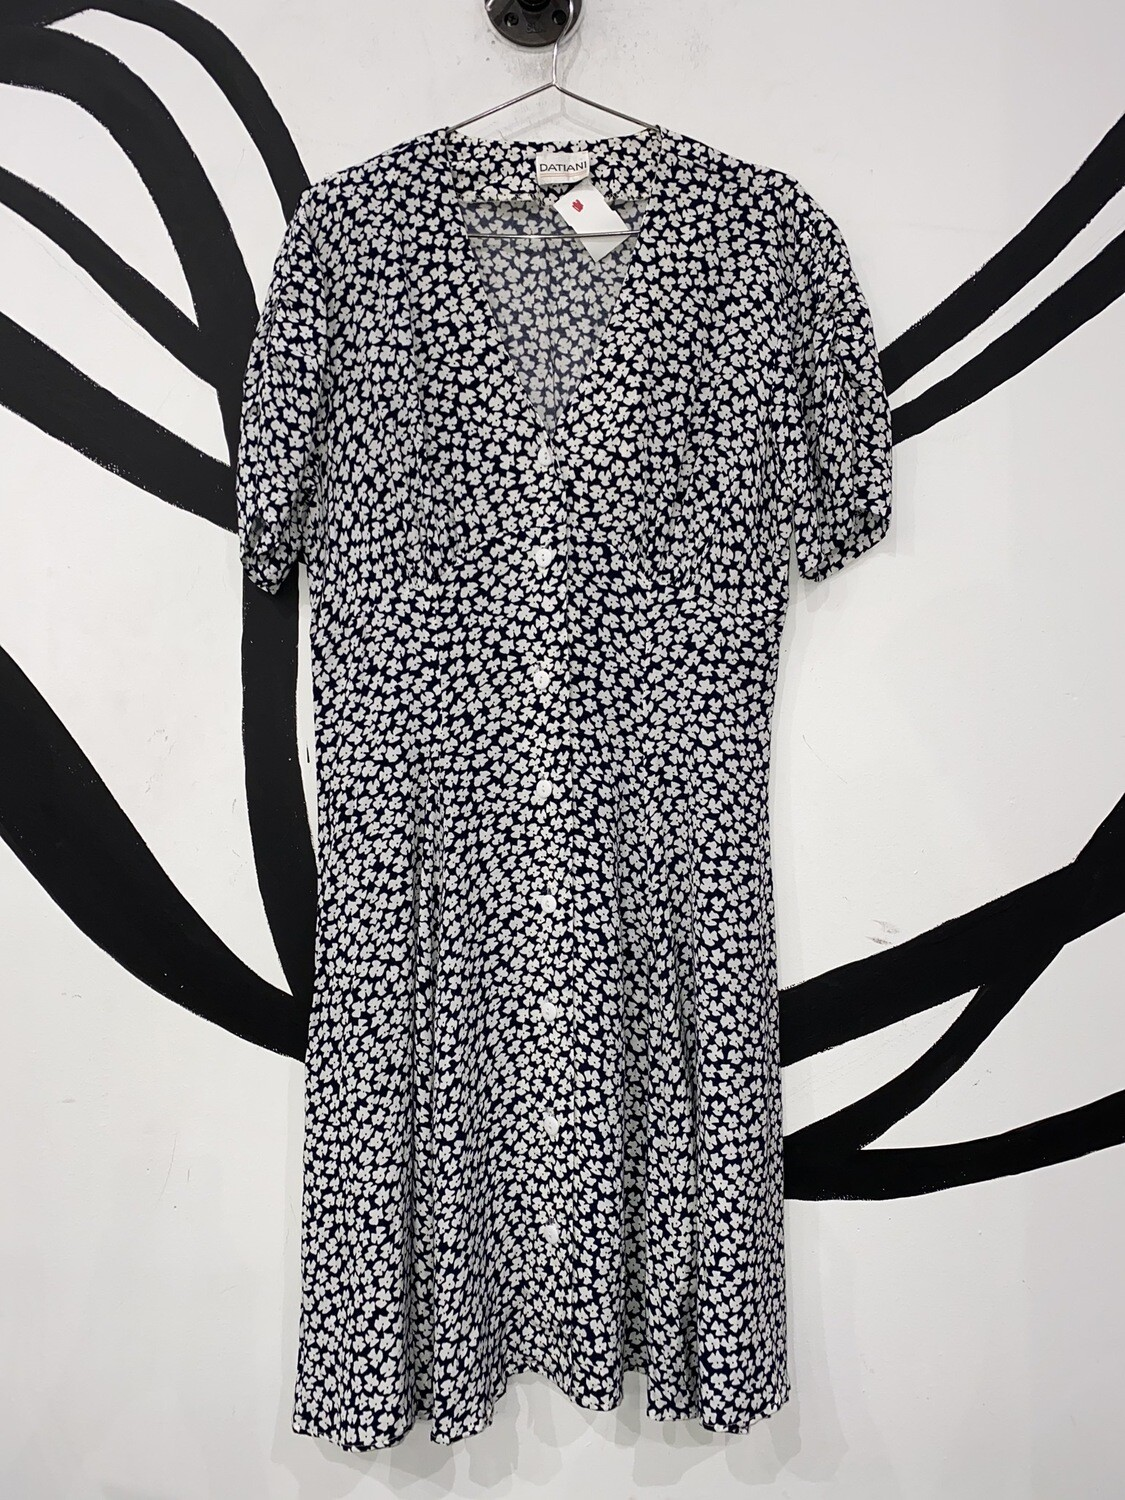 Black And White Floral Datiani Dress Size L